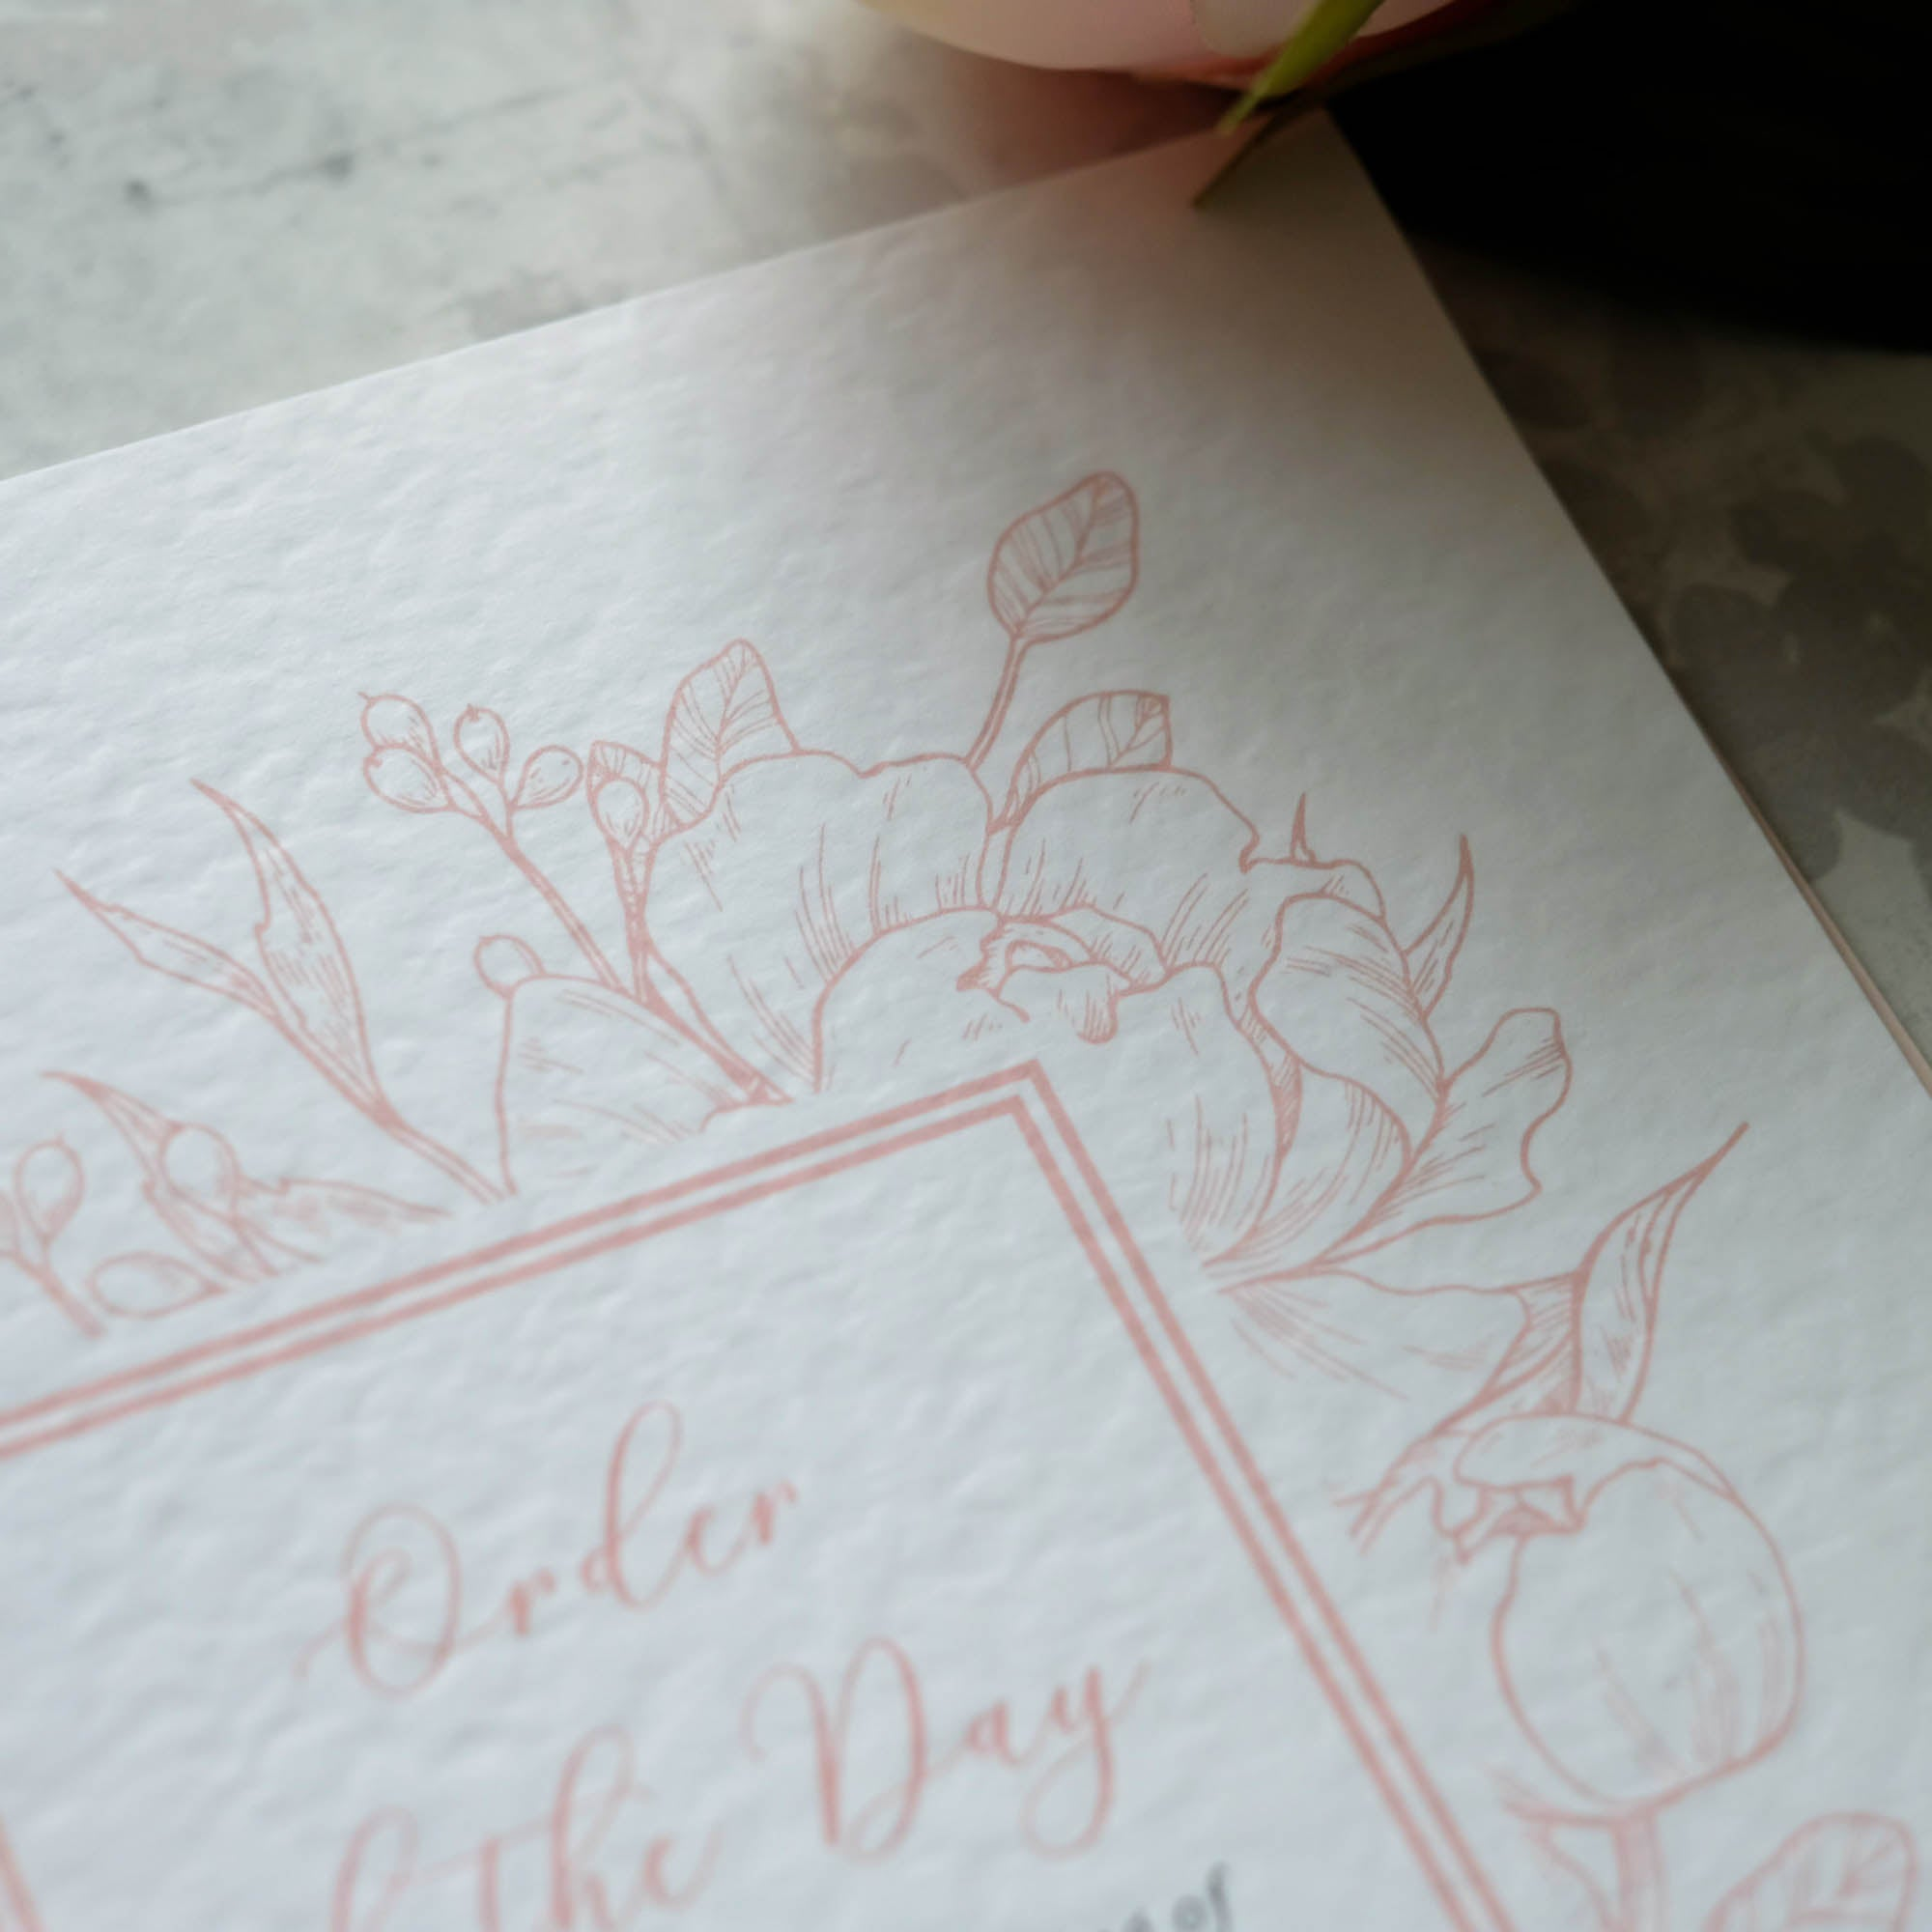 Order of Service with Peonies Illustration